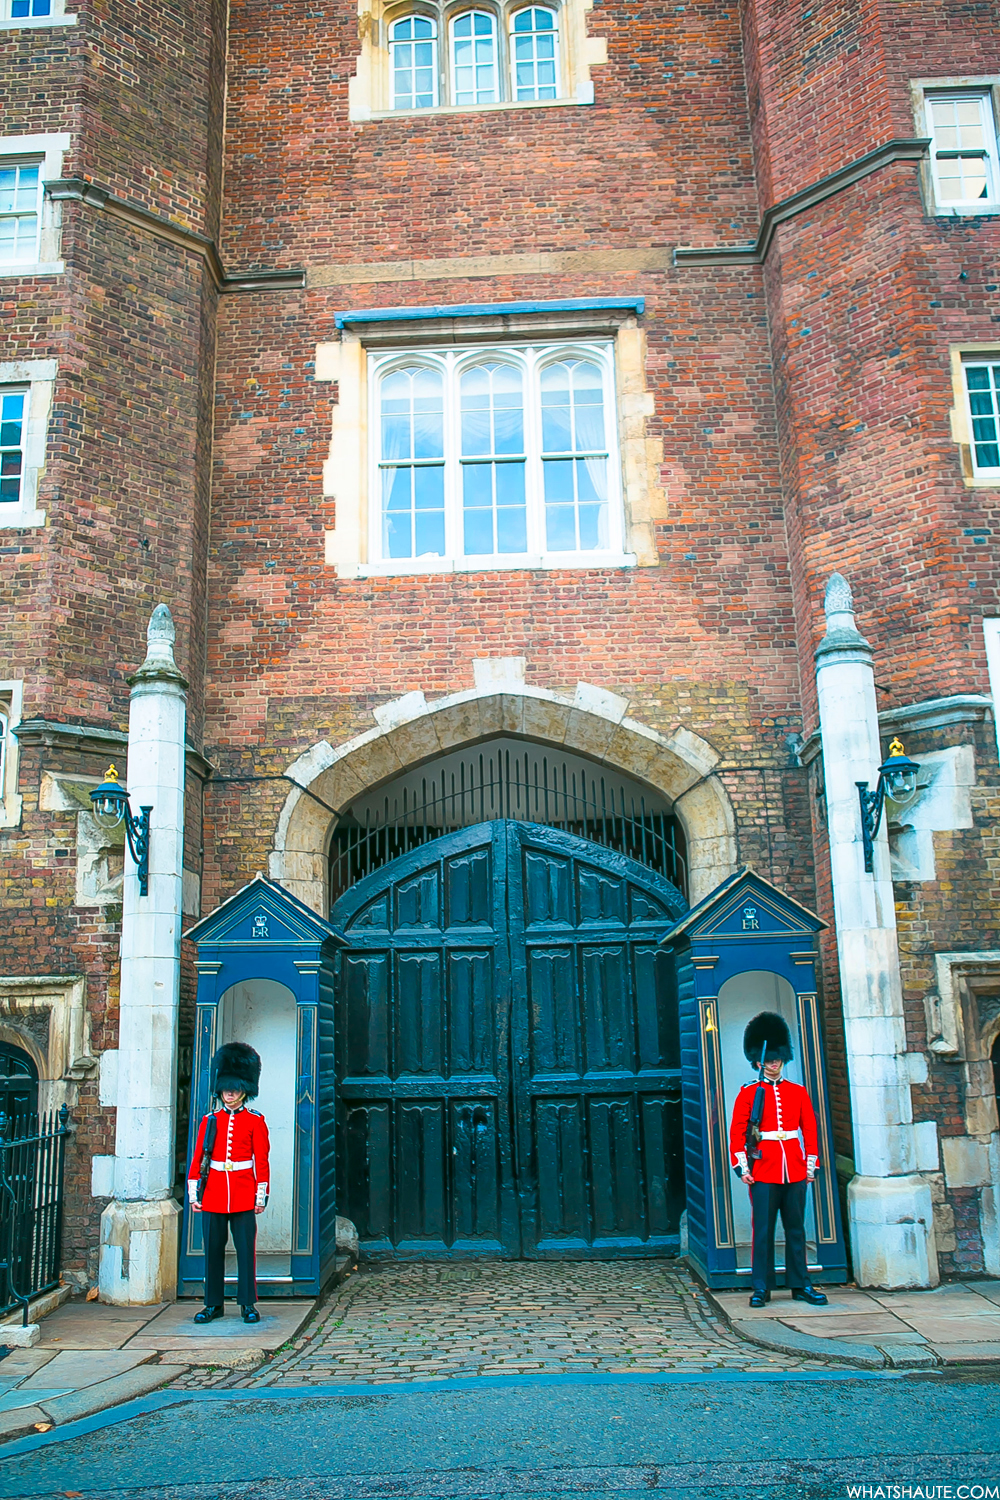 Guards boxes on Cleveland Row at St. James's Palace - London, England, What's Haute in the World